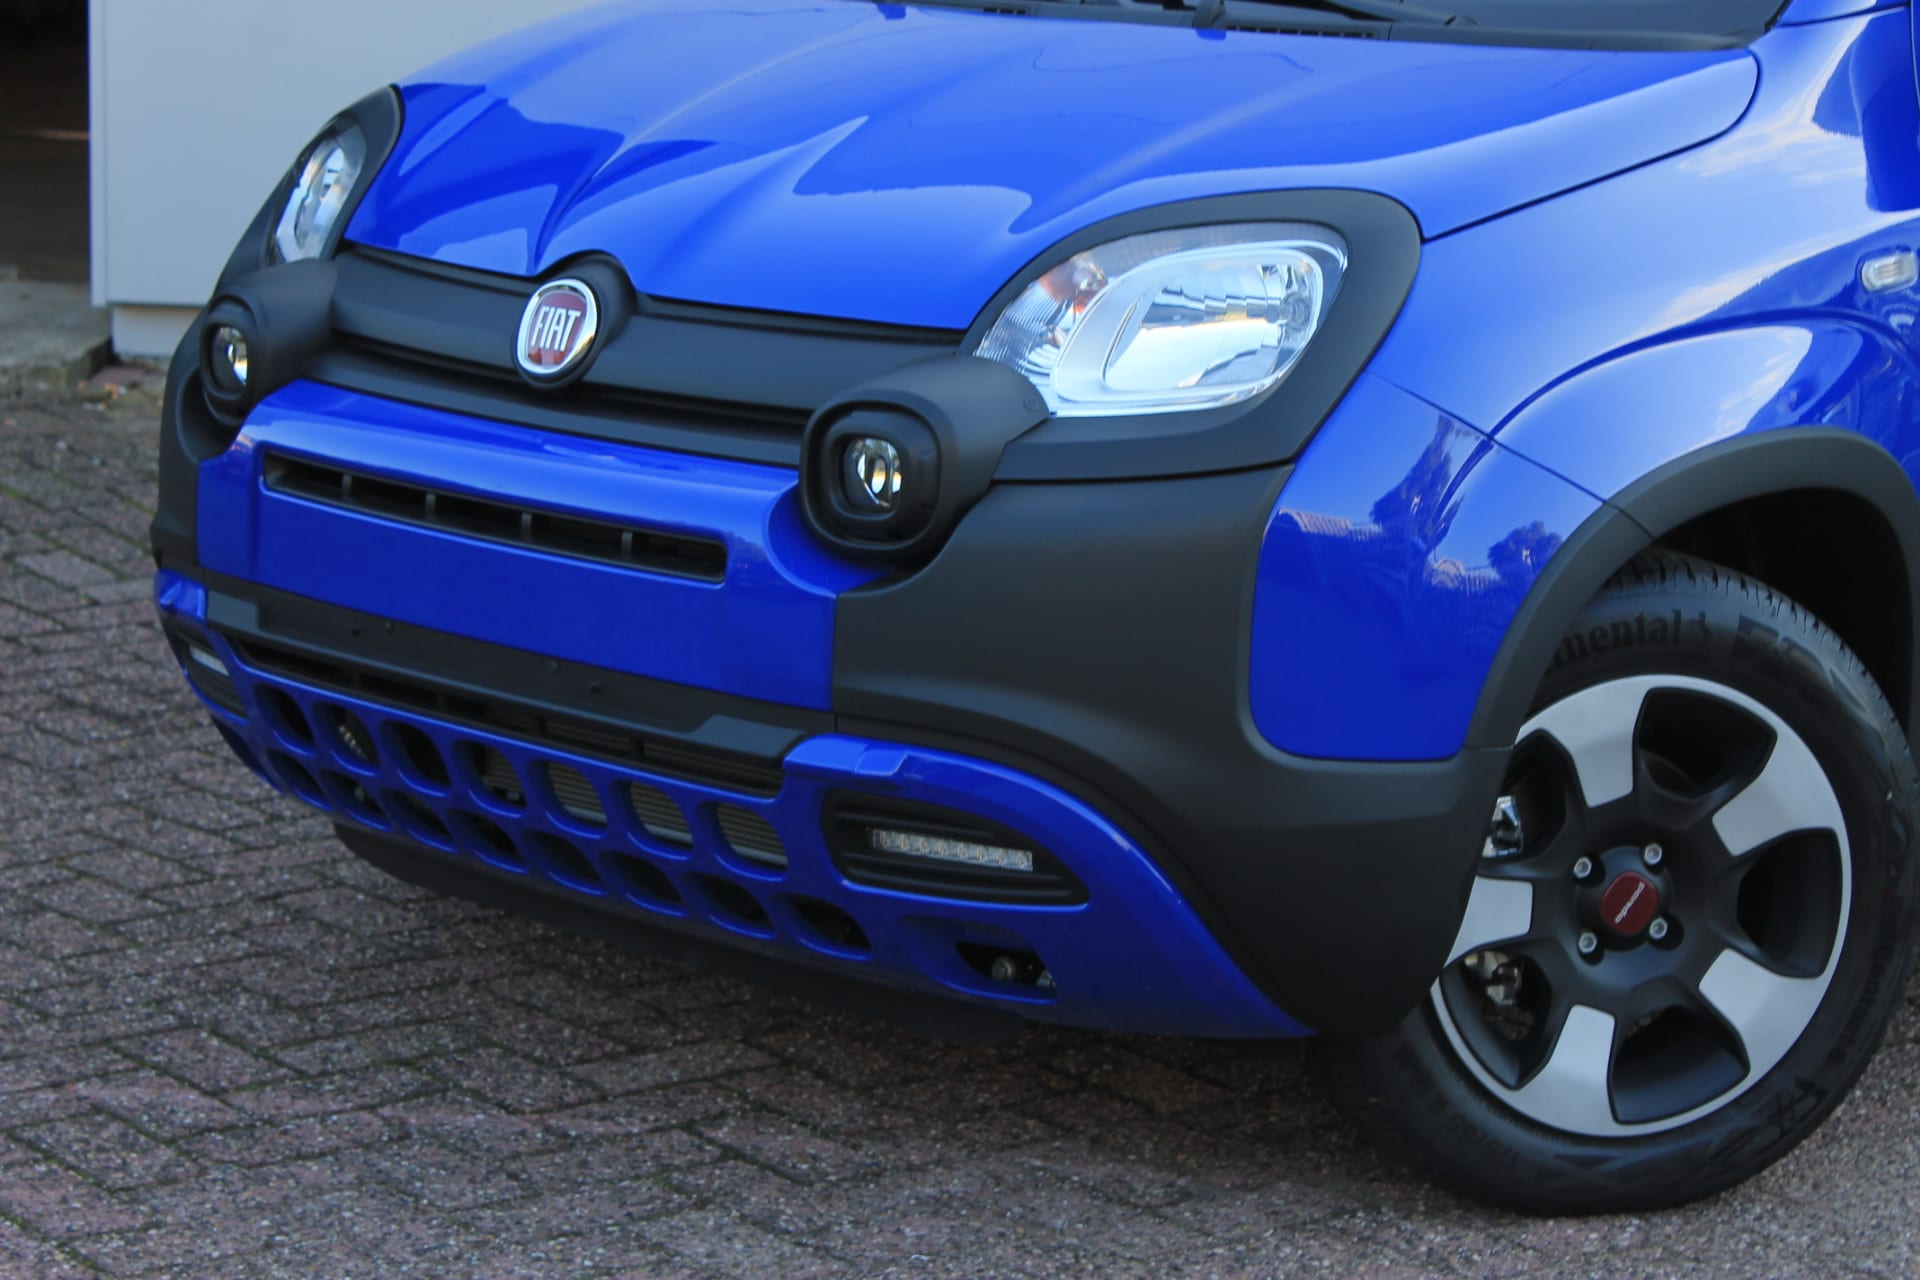 Fiat Panda Hybrid City Cross blauw - schuin vooraanzicht close up